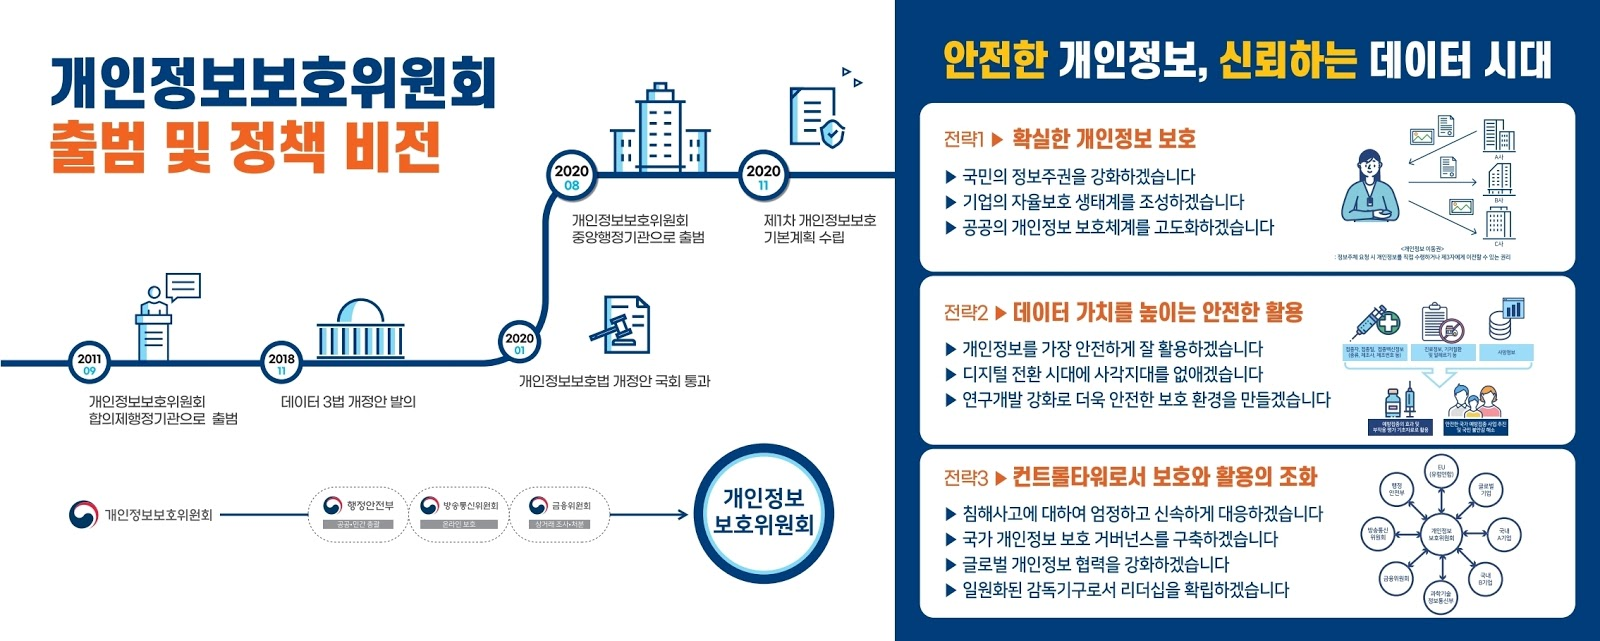 South Korean Privacy Strategy